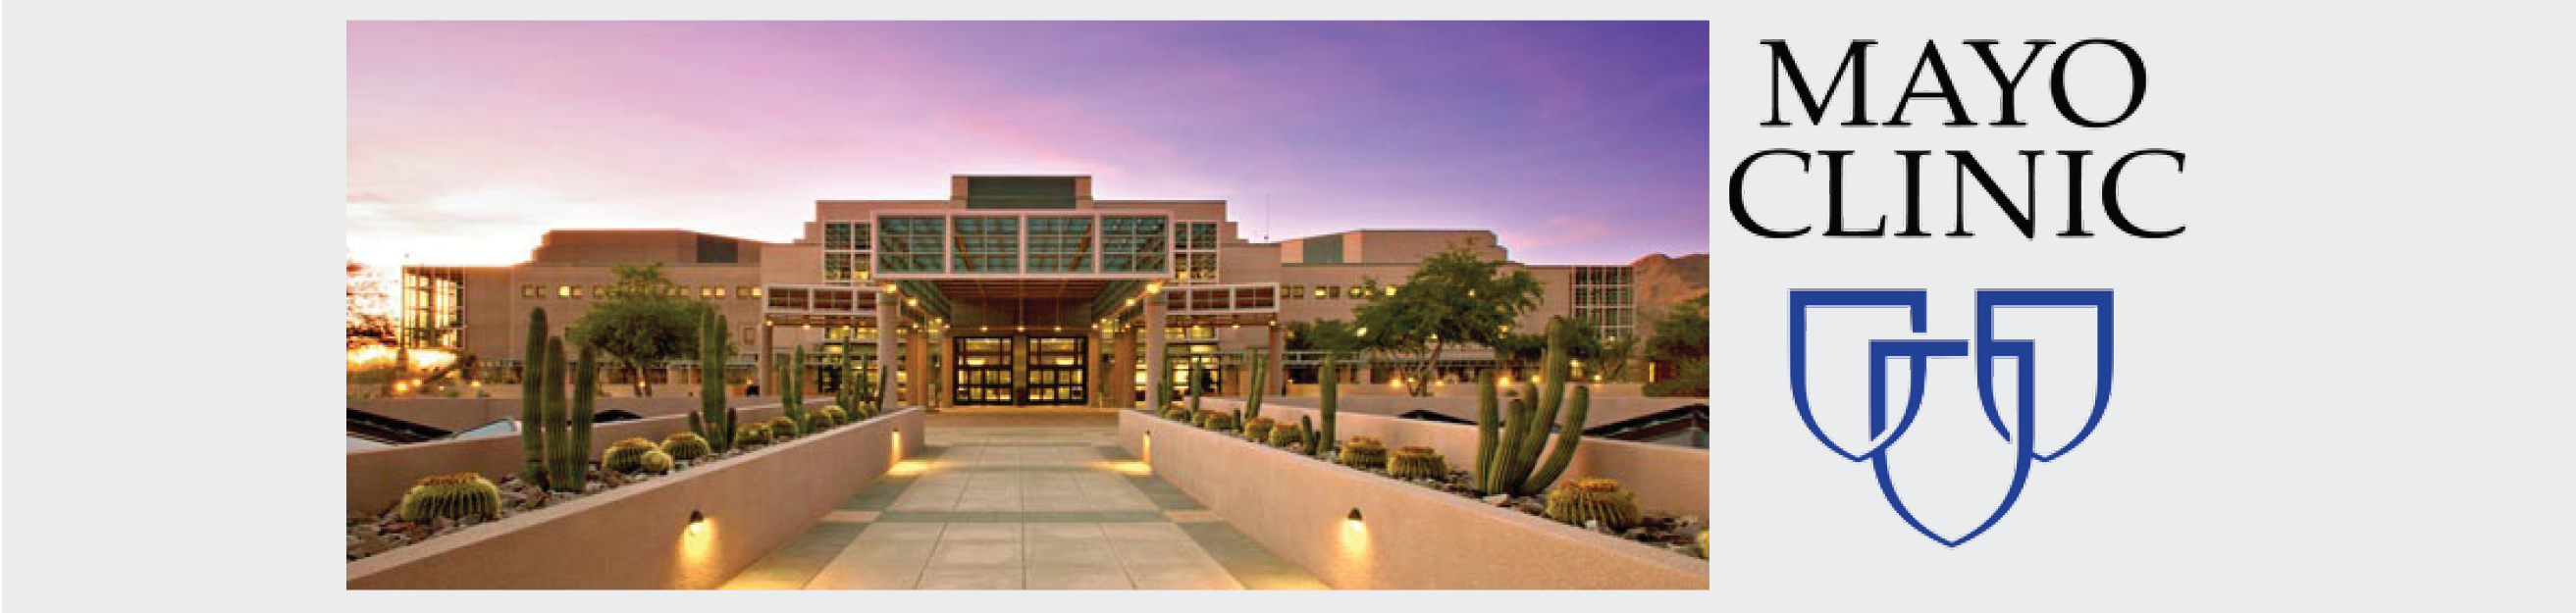 Mayo Clinic - Phoenix | 100 hospital and health systems with